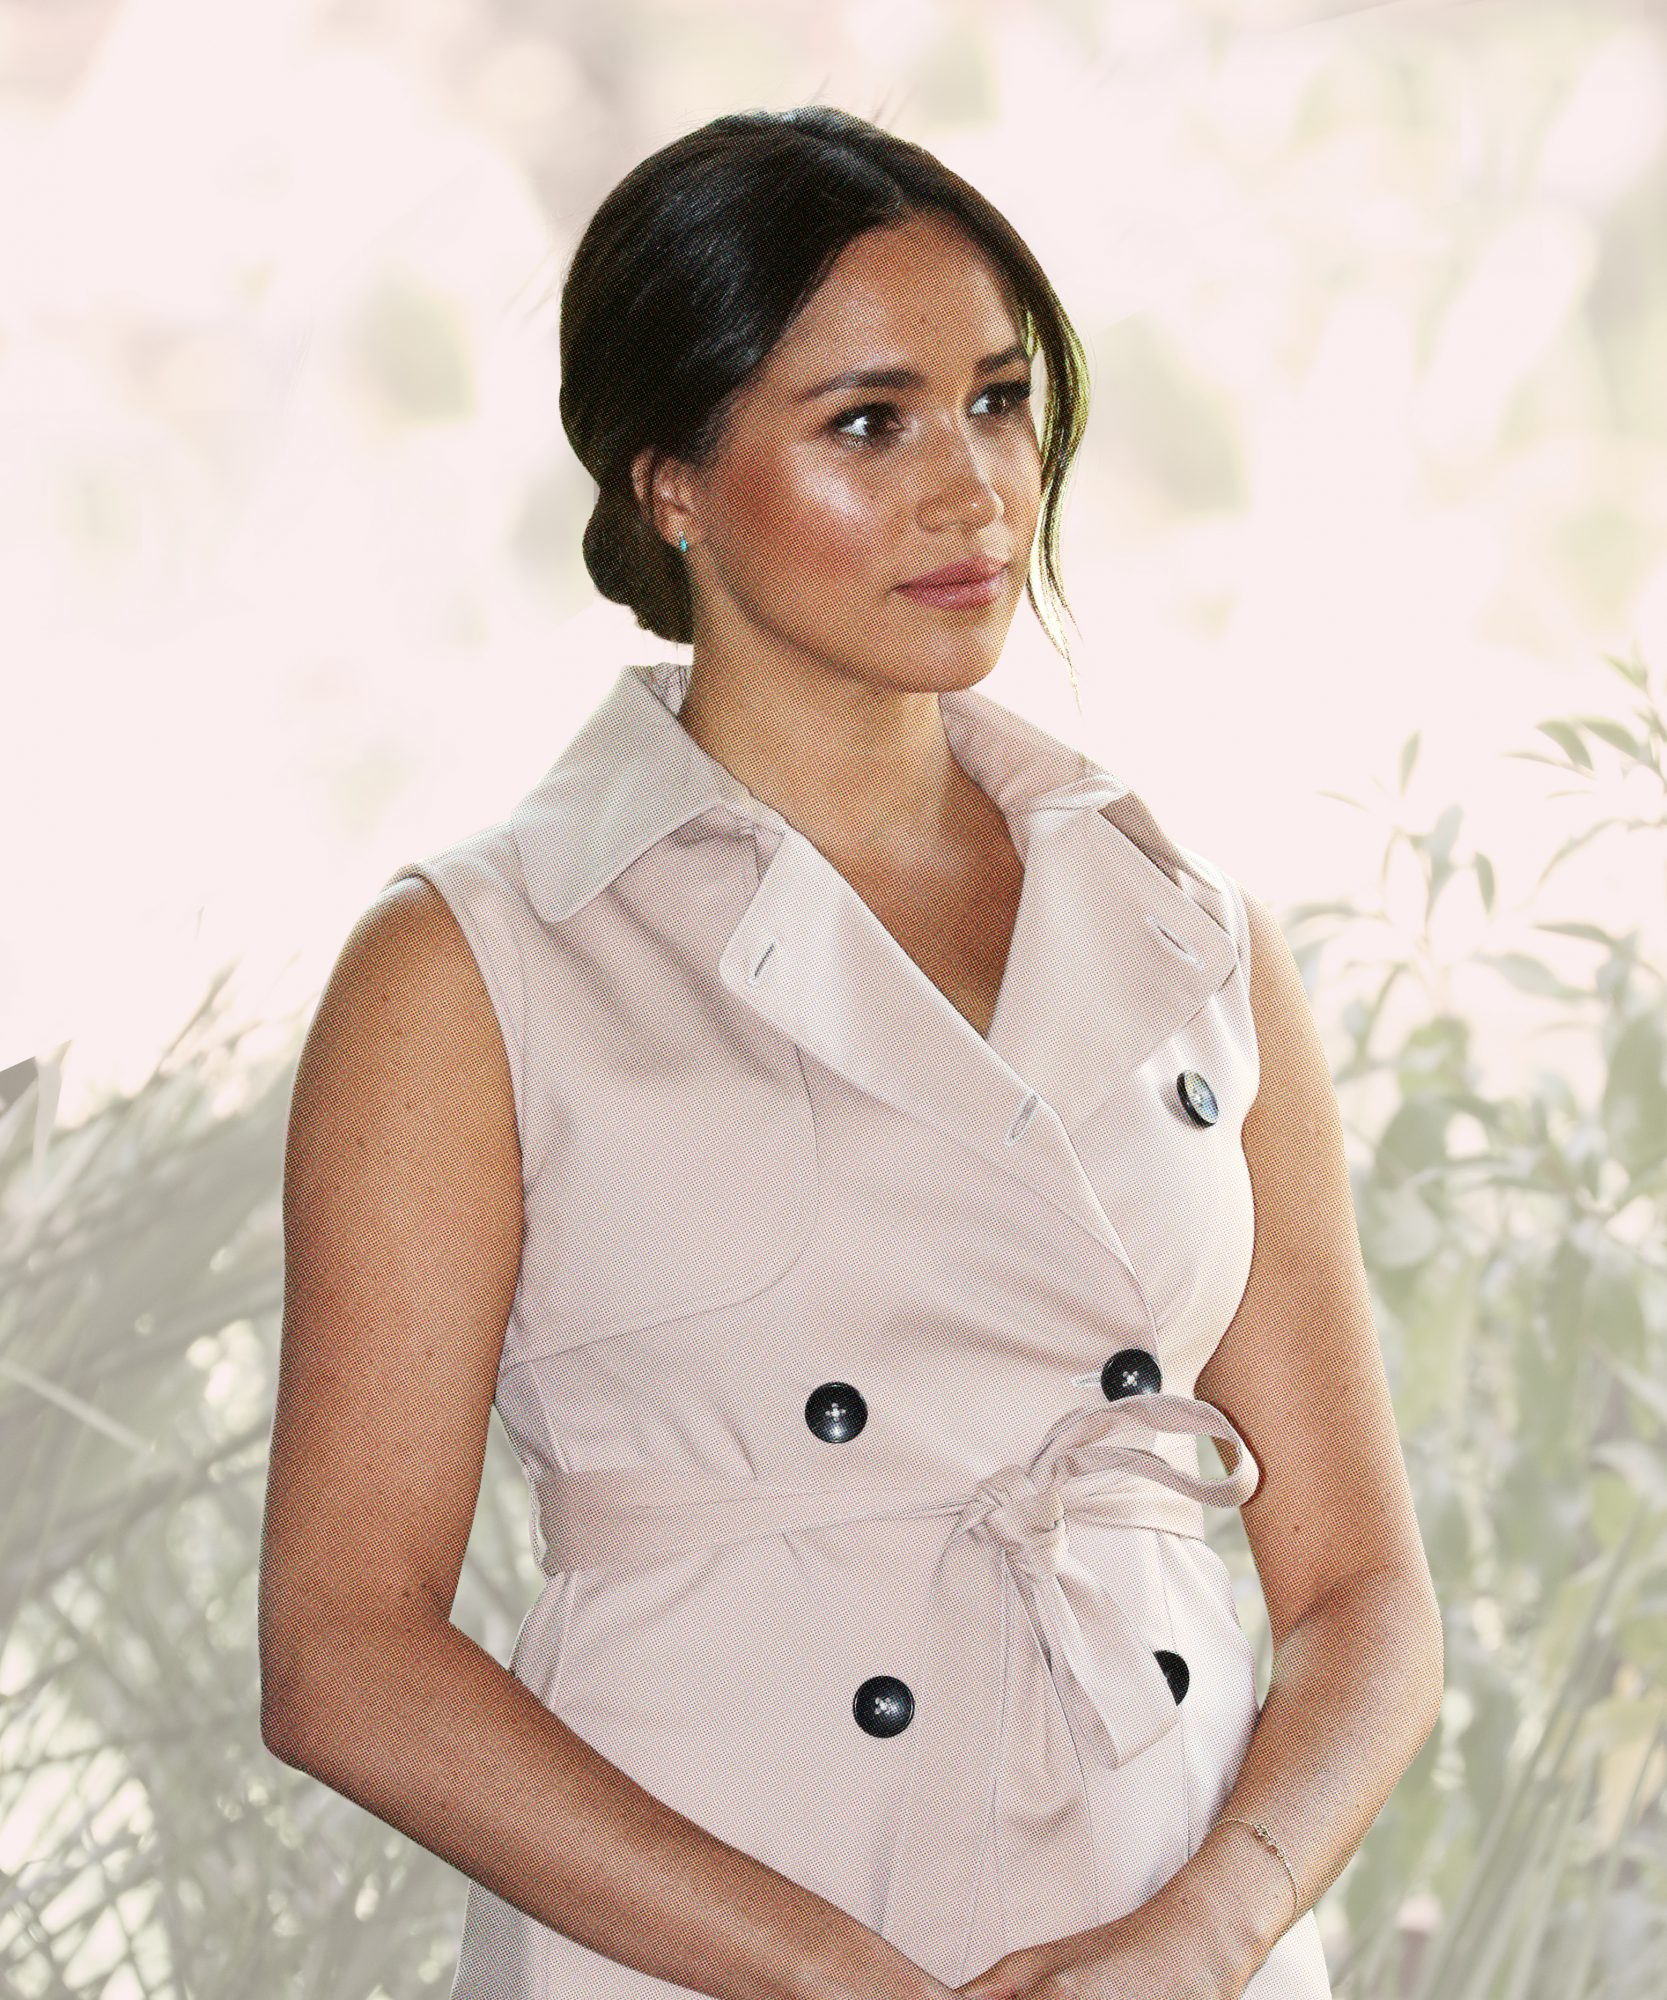 Meghan Markle Is 'Not Okay' — and She's Not Alone